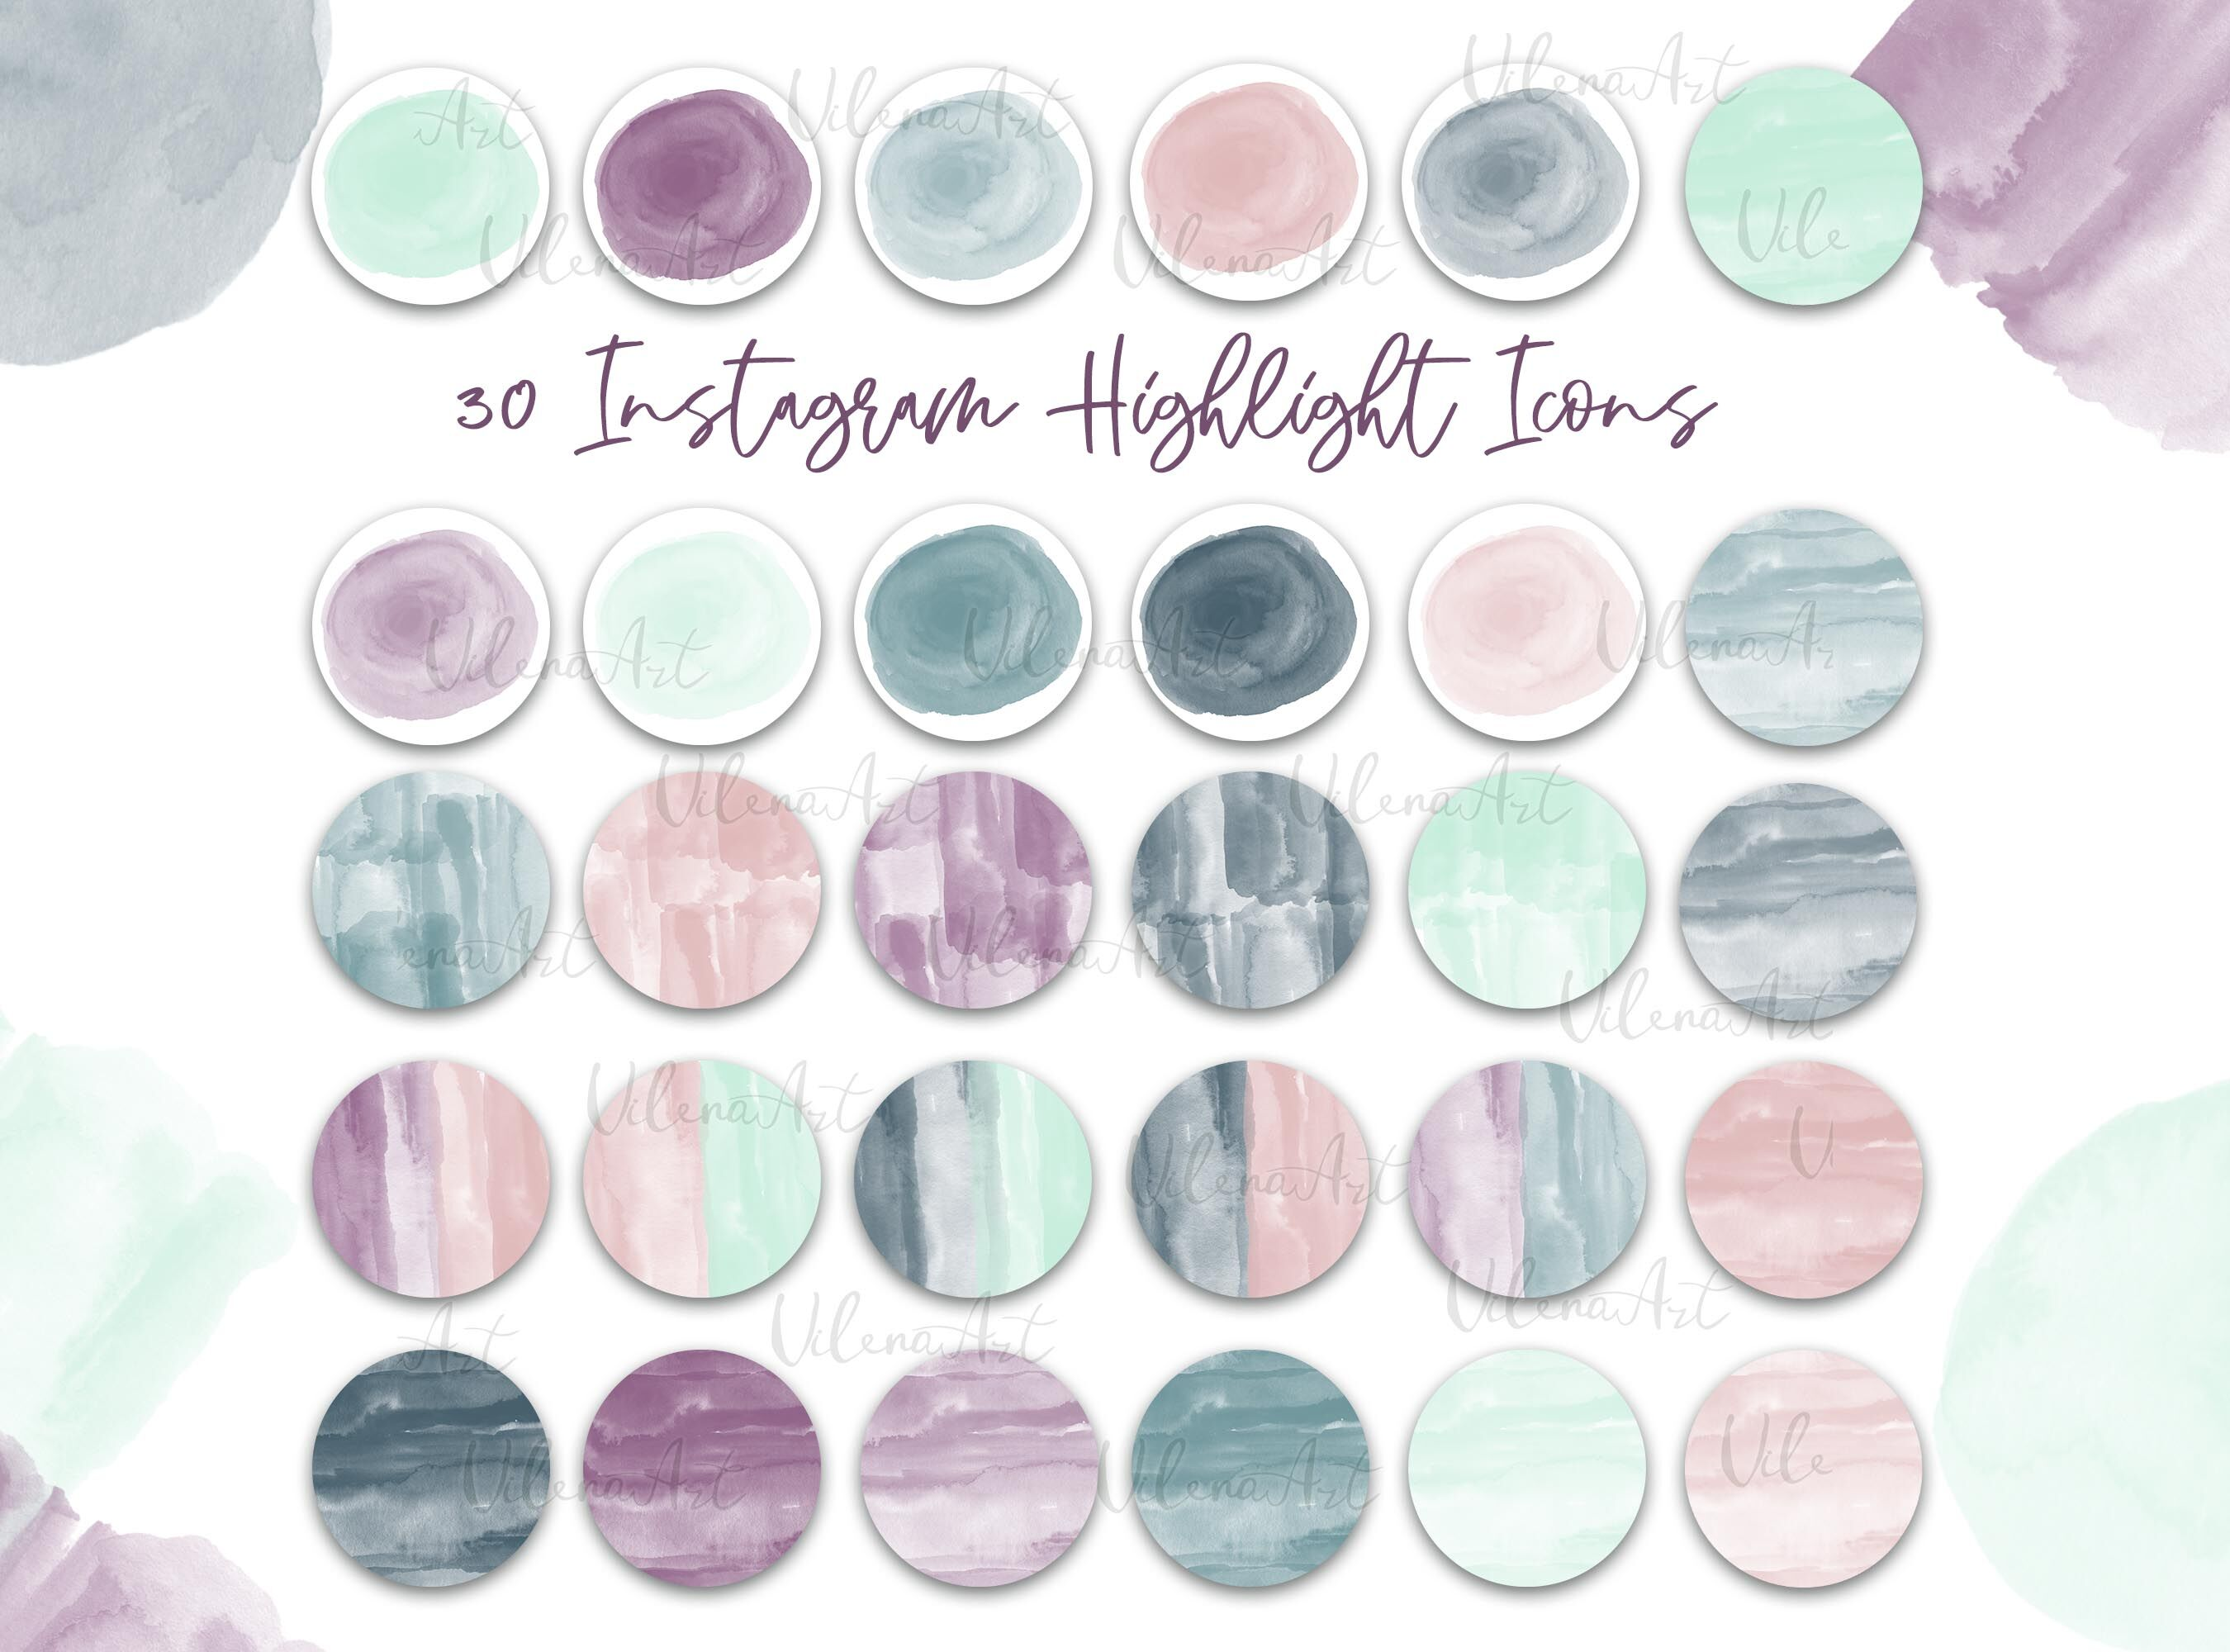 Neutral Watercolor Highlight Covers Modern Boho Instagram Icons Blog S By Vilenaart Thehungryjpeg Com